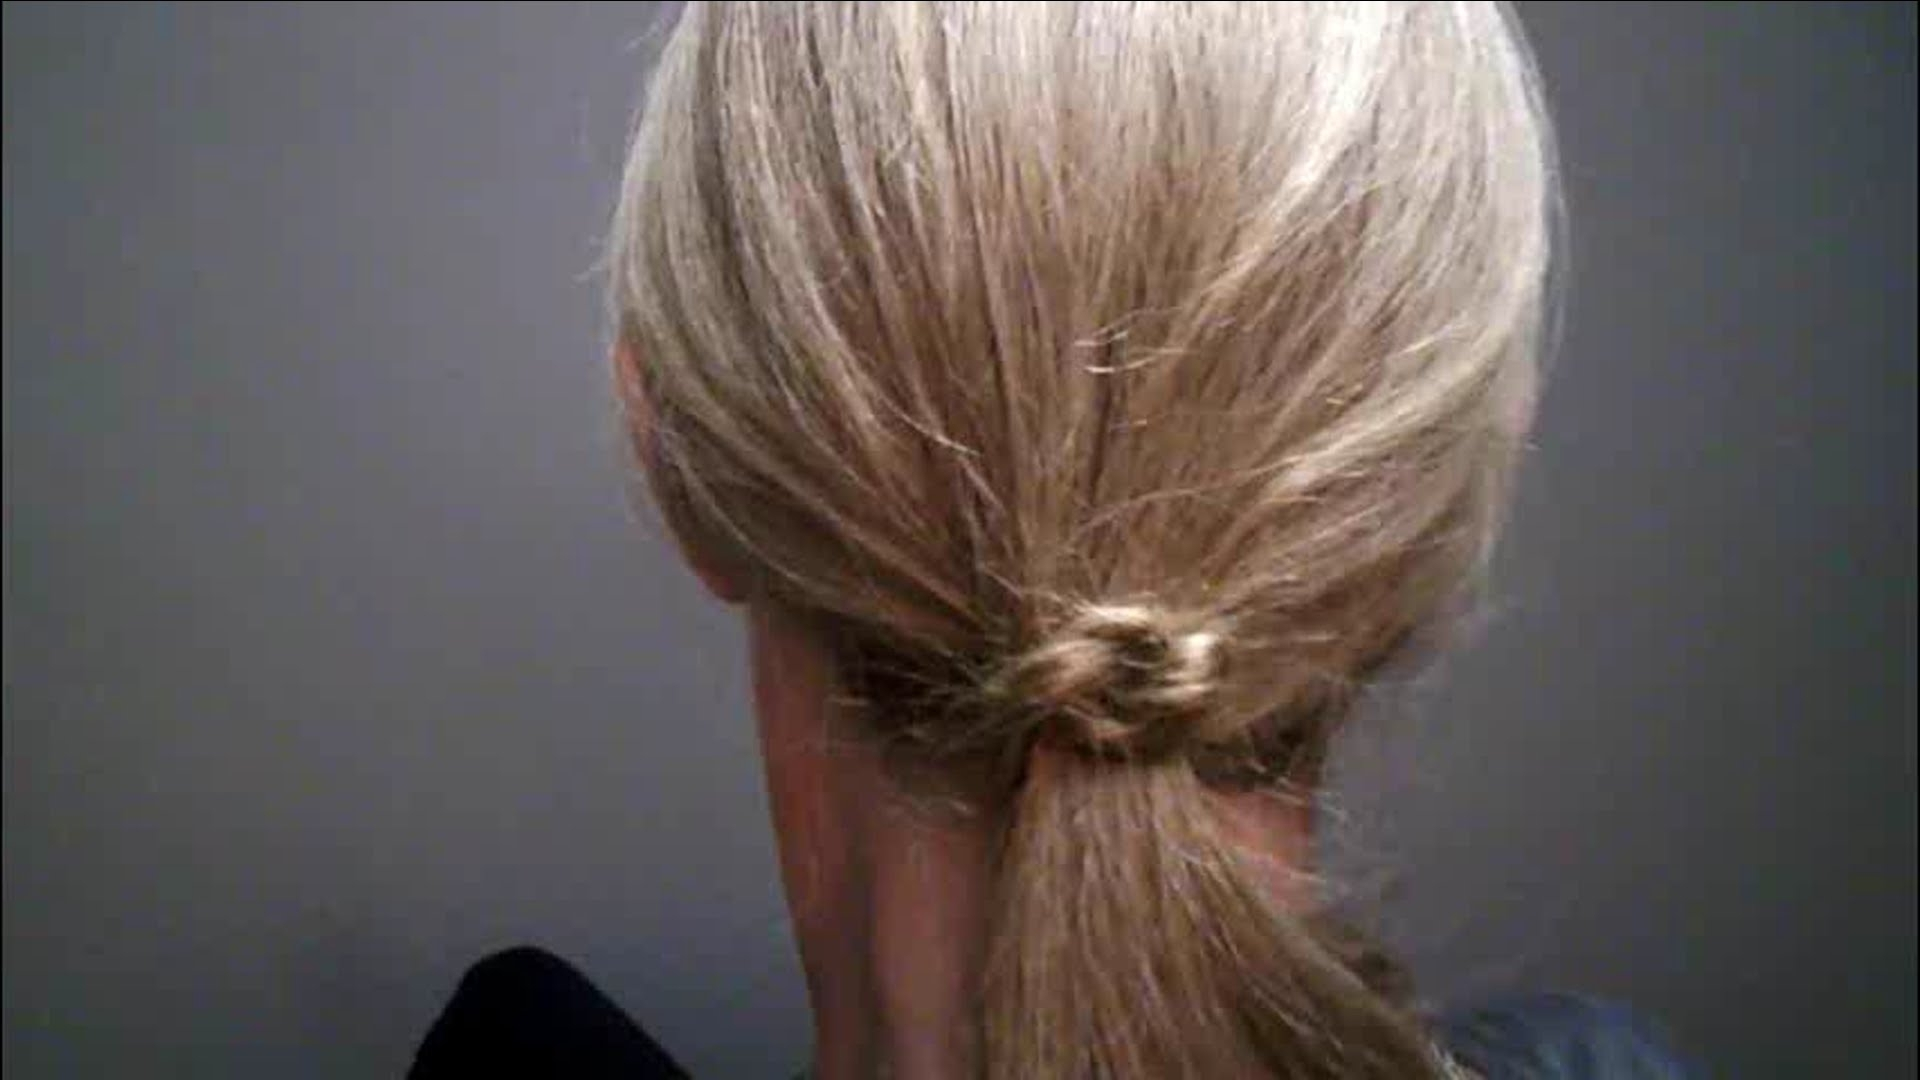 Center Knotted Ponytail Learn How To Braid Your Own Hair Beginner Pertaining To Well Known Knotted Ponytail Hairstyles (View 17 of 20)